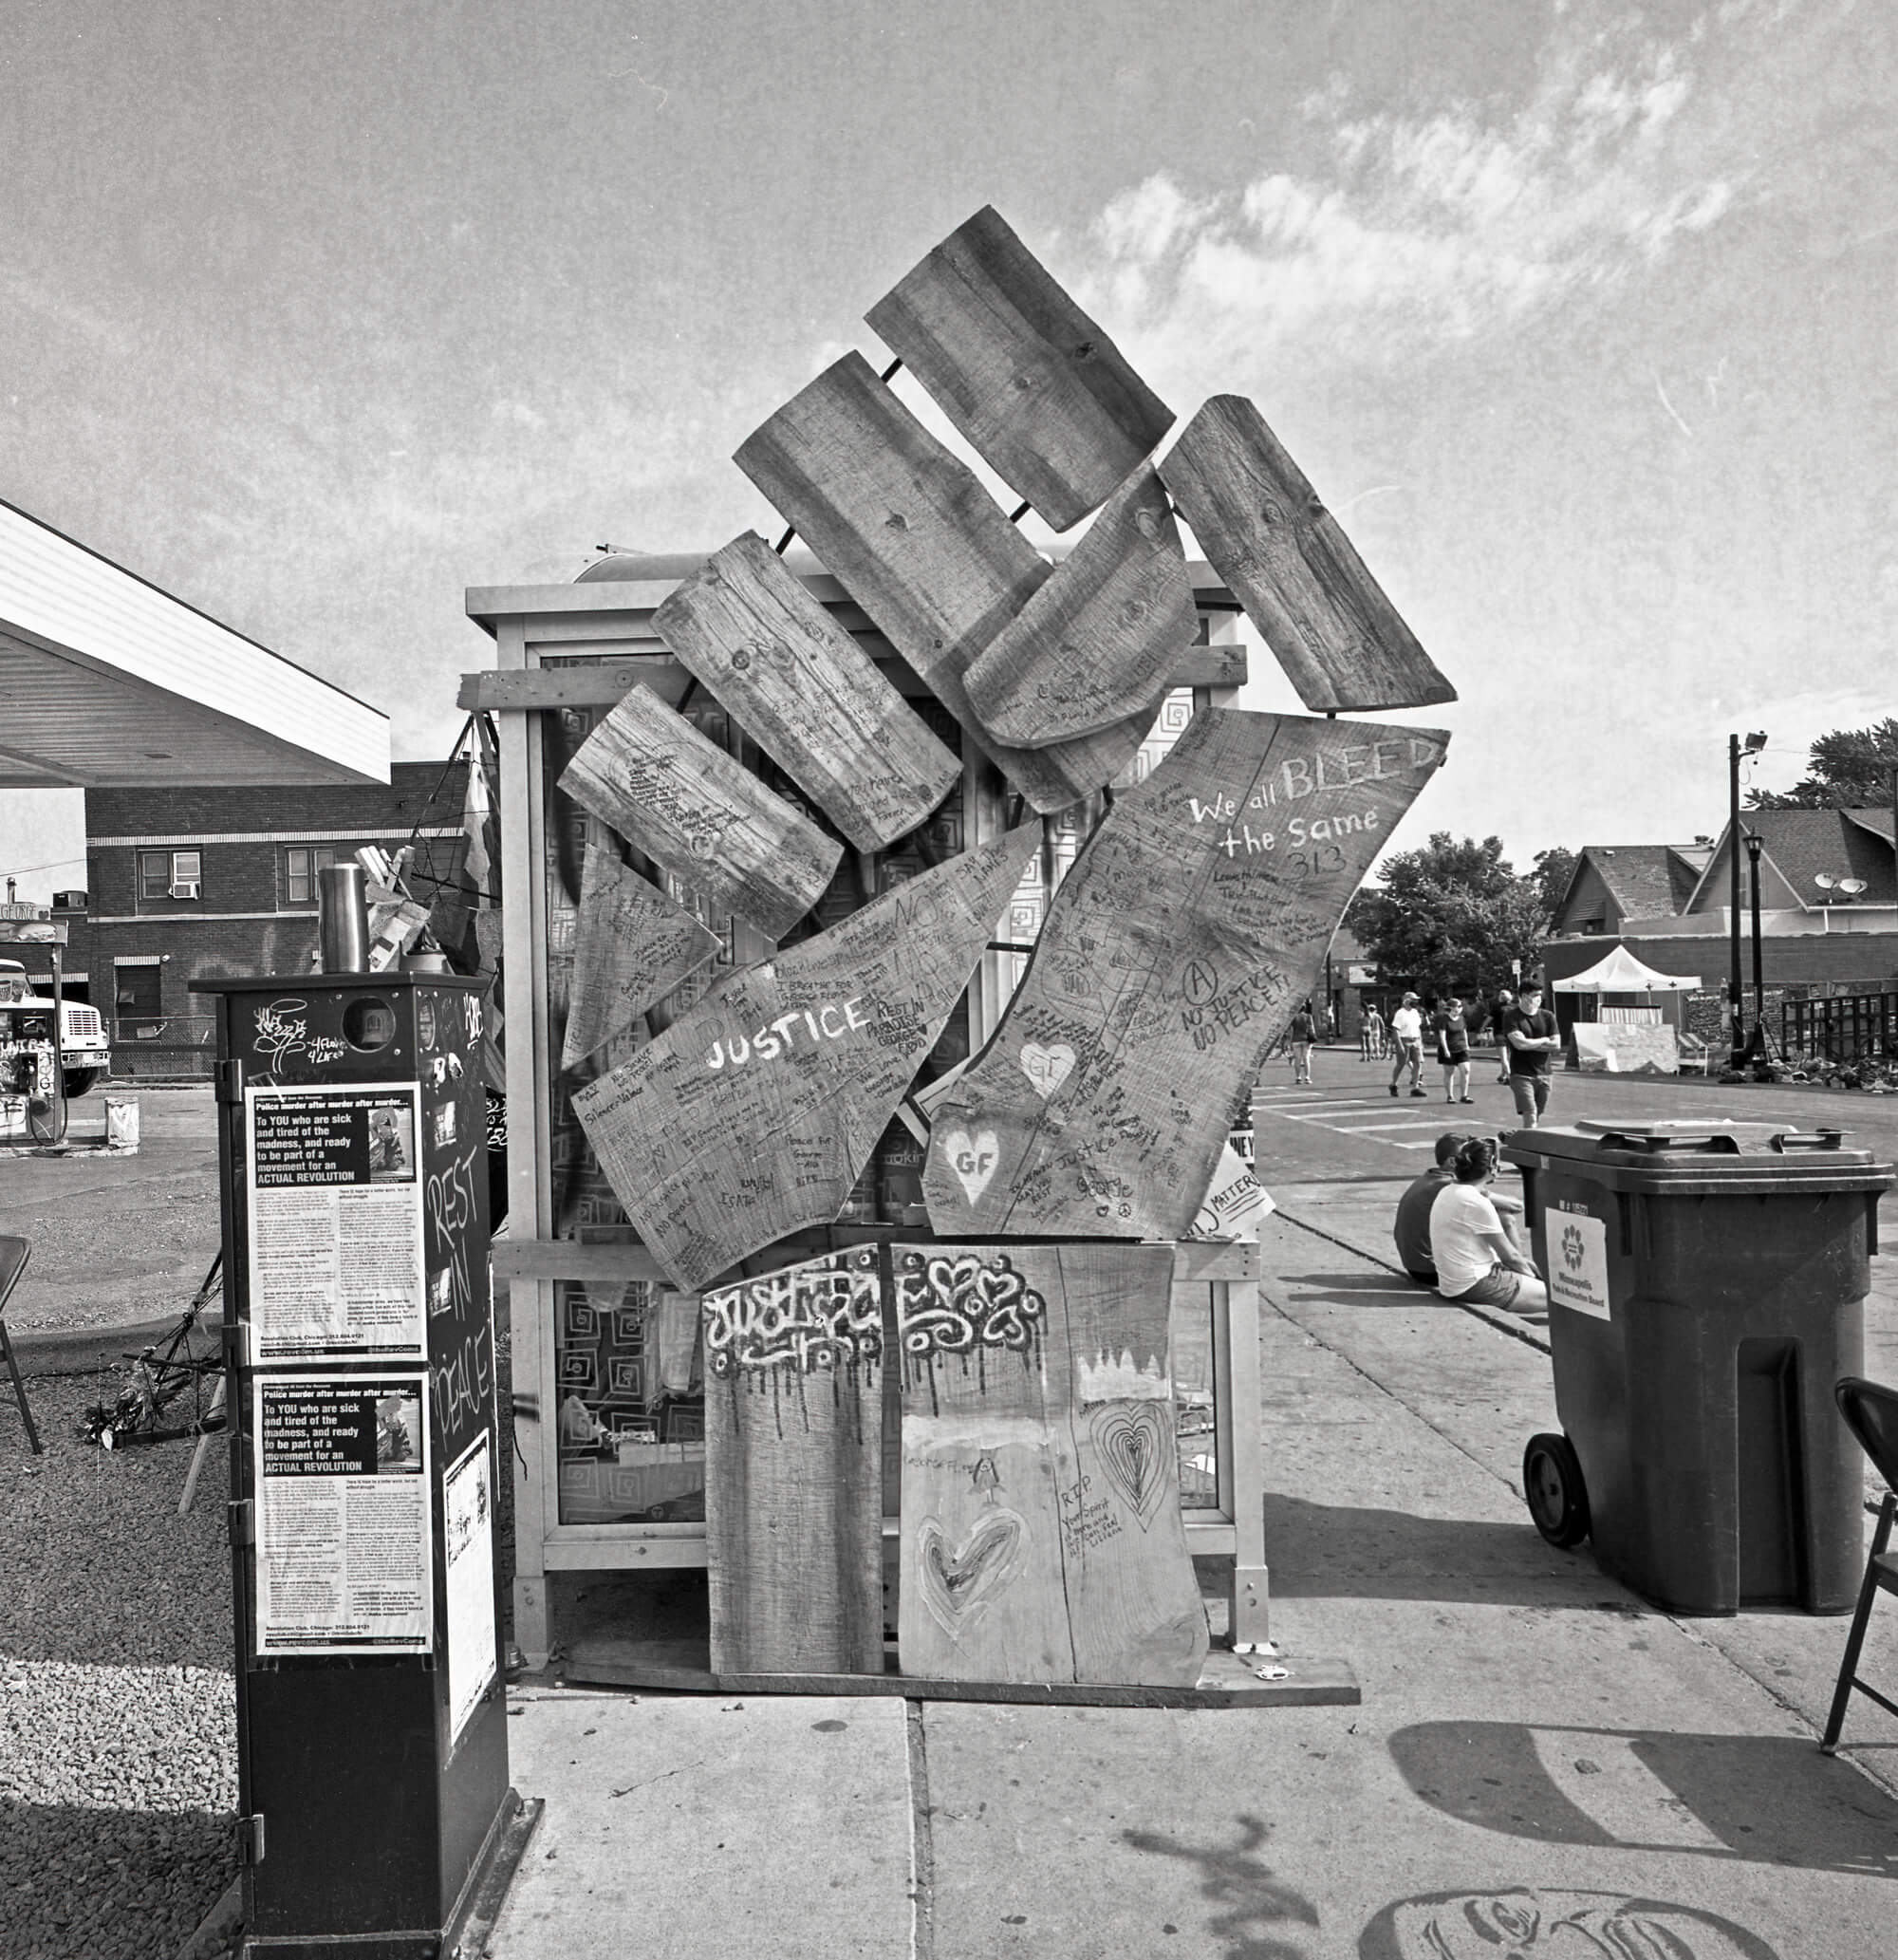 A wooden fist sculpture in Minneapolis, in tribute to George Floyd